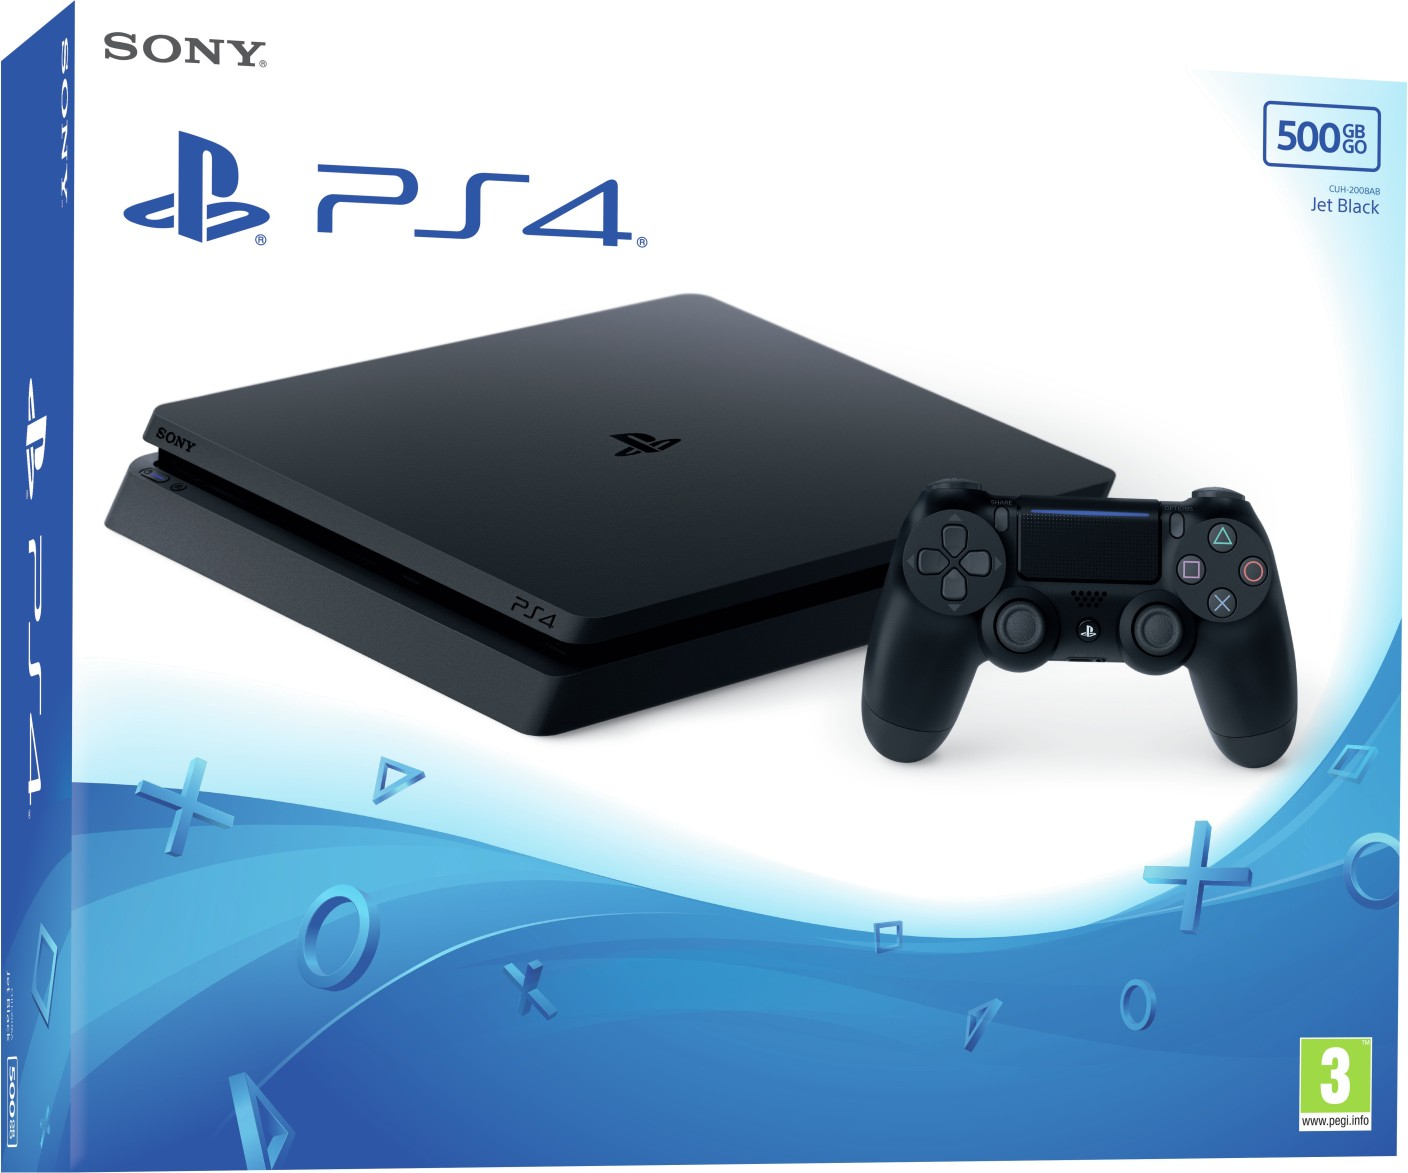 sony playstation 4 ps4 slim 500 gb price in india buy sony playstation 4 ps4 slim 500 gb. Black Bedroom Furniture Sets. Home Design Ideas